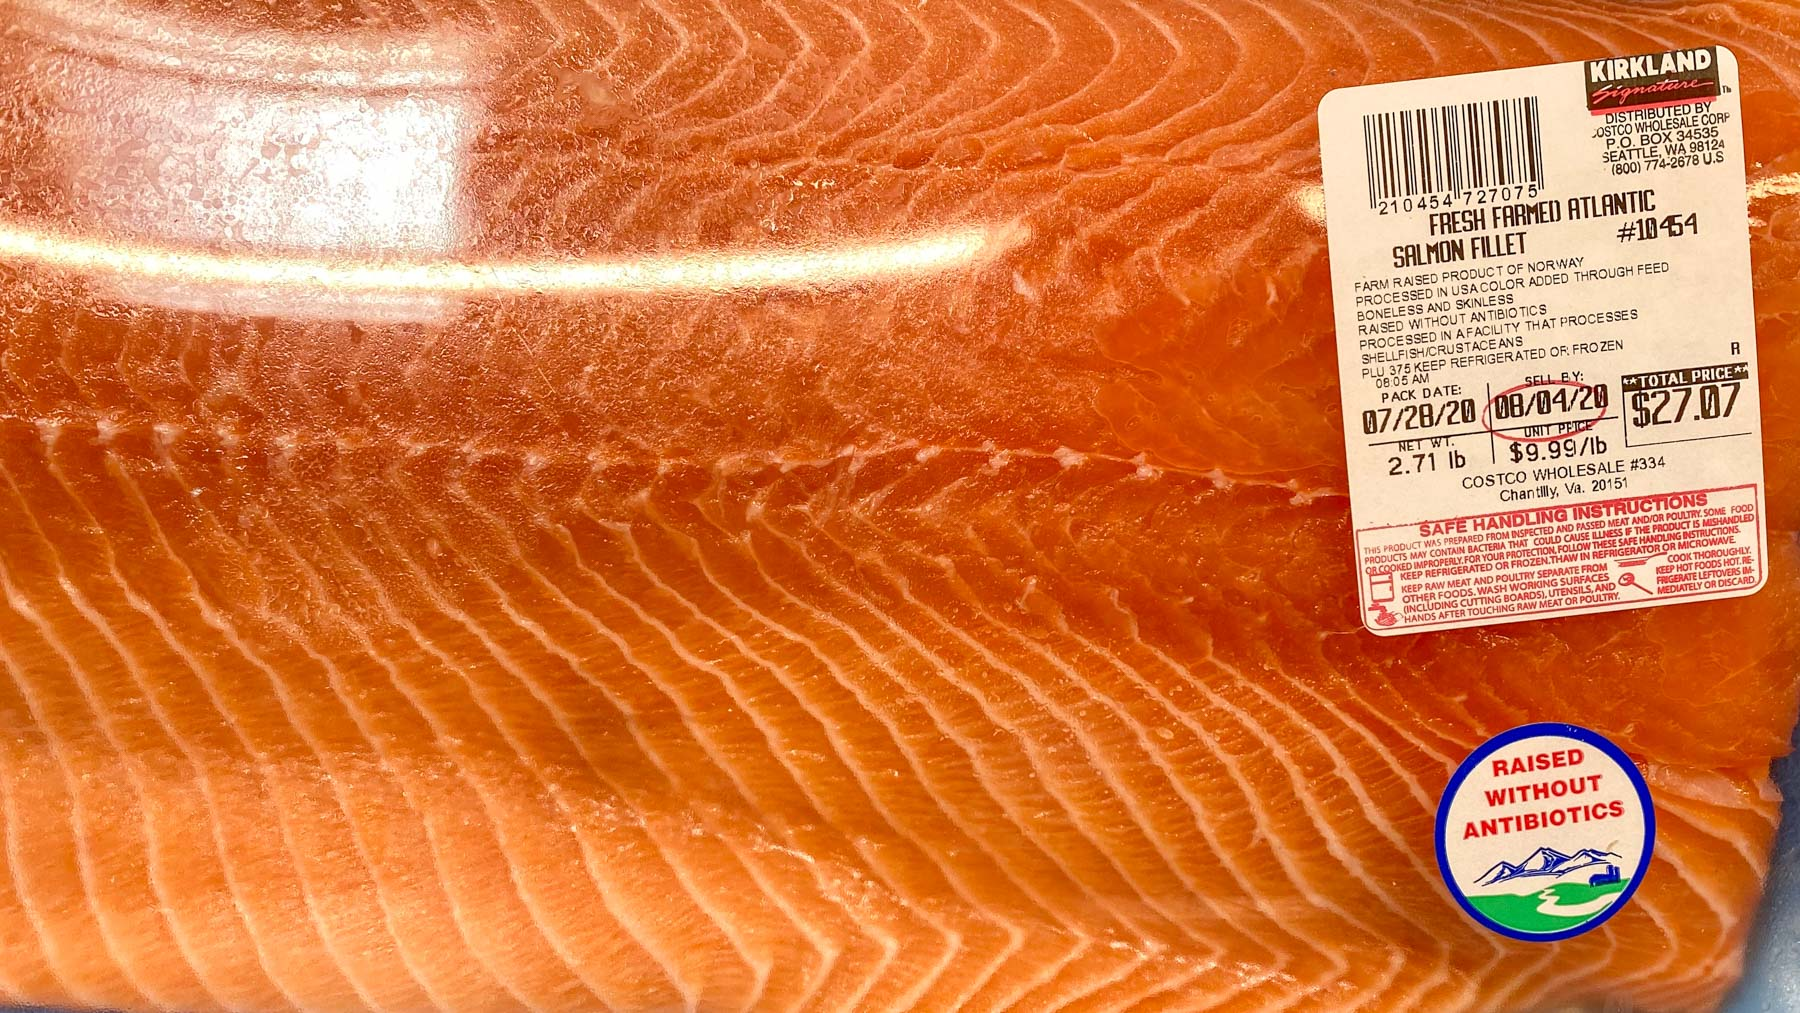 costco salmon from Norway raised without antibiotics